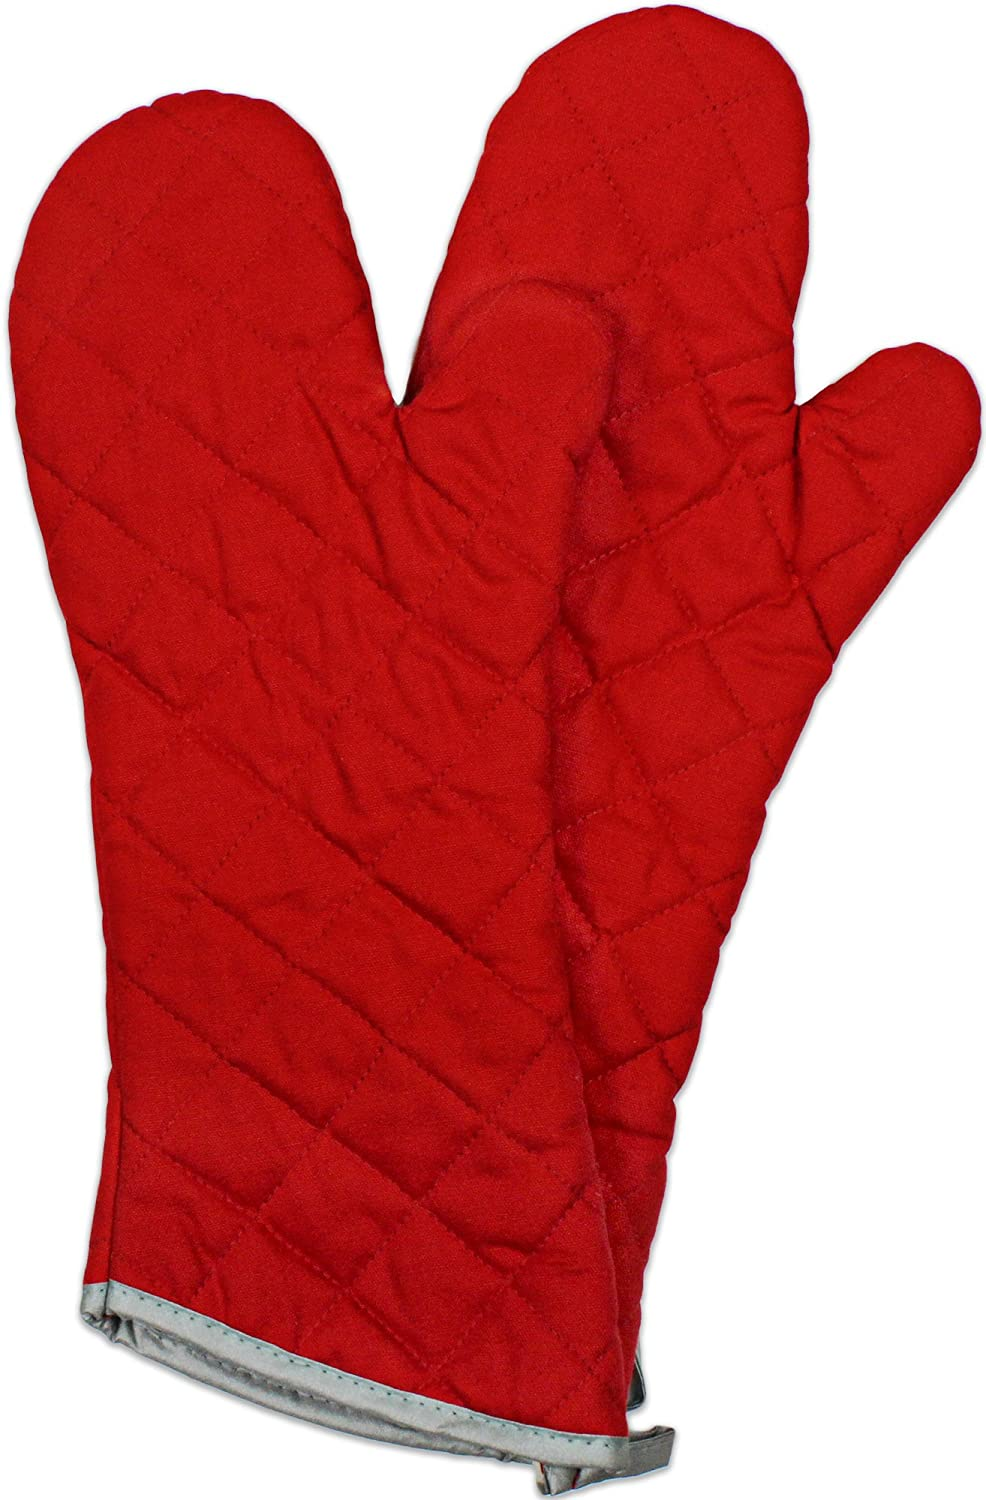 Nouvelle Legende Flame Retardant Kitchen and Outdoors Mitt Quilted (2-Pack = 1 Pair) - Red